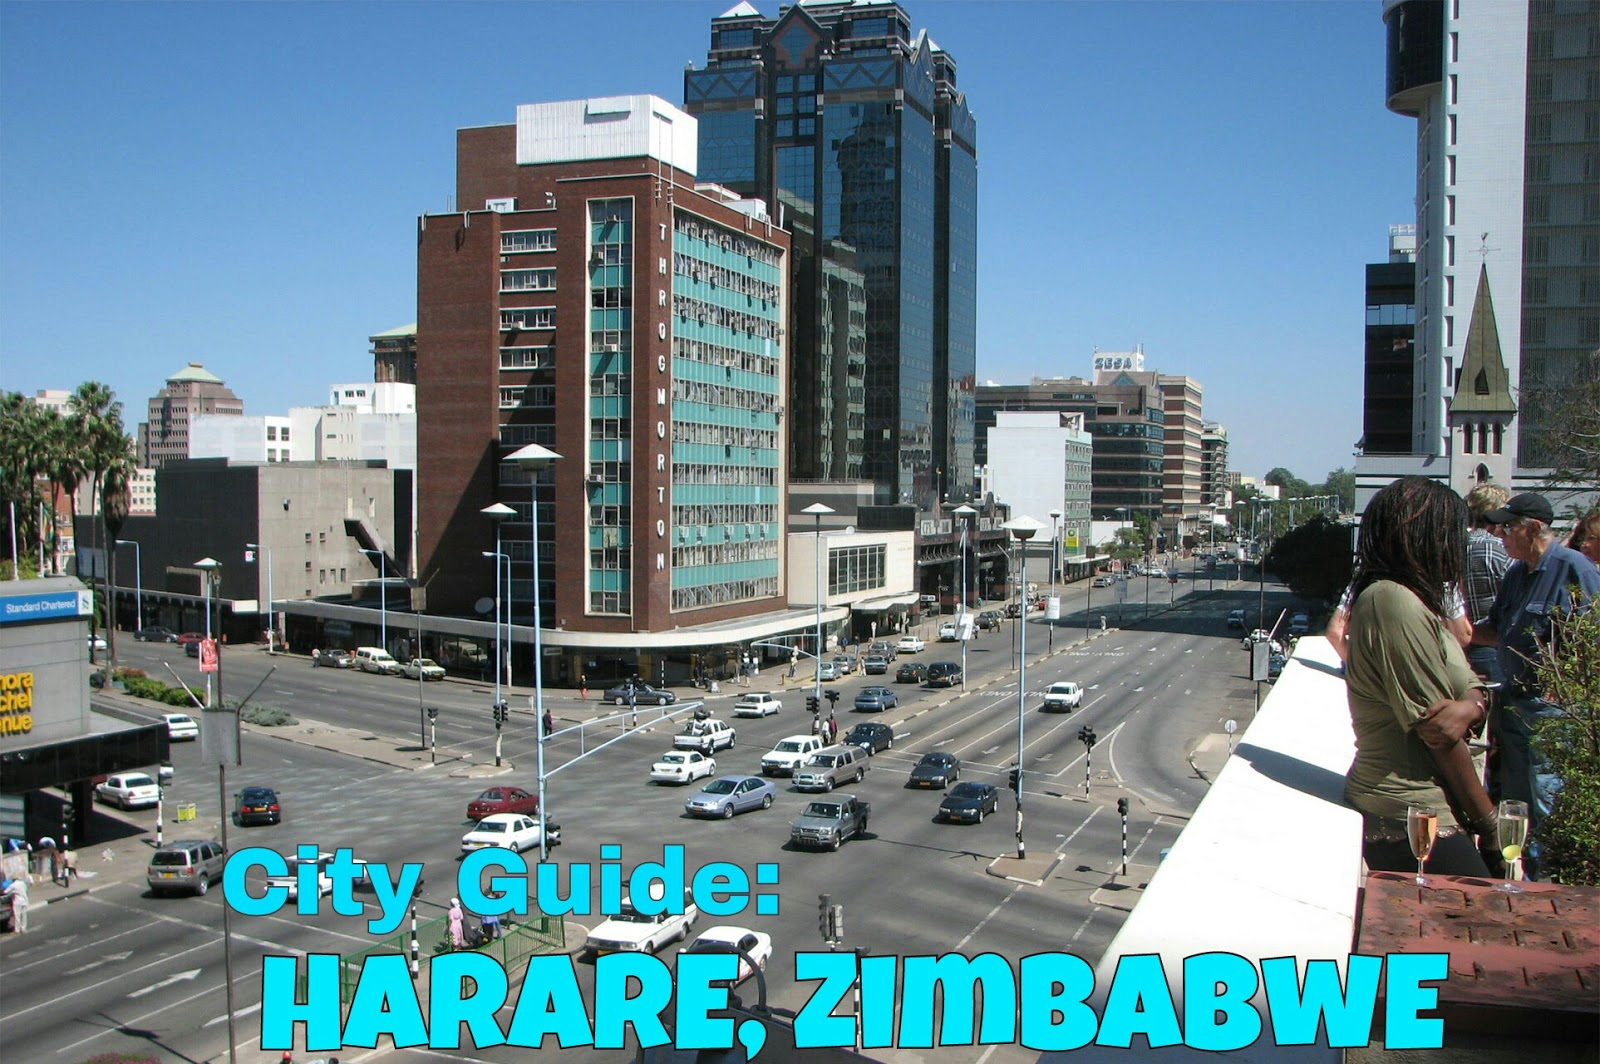 The heart of Zimbabwe - the capital of Harare 29